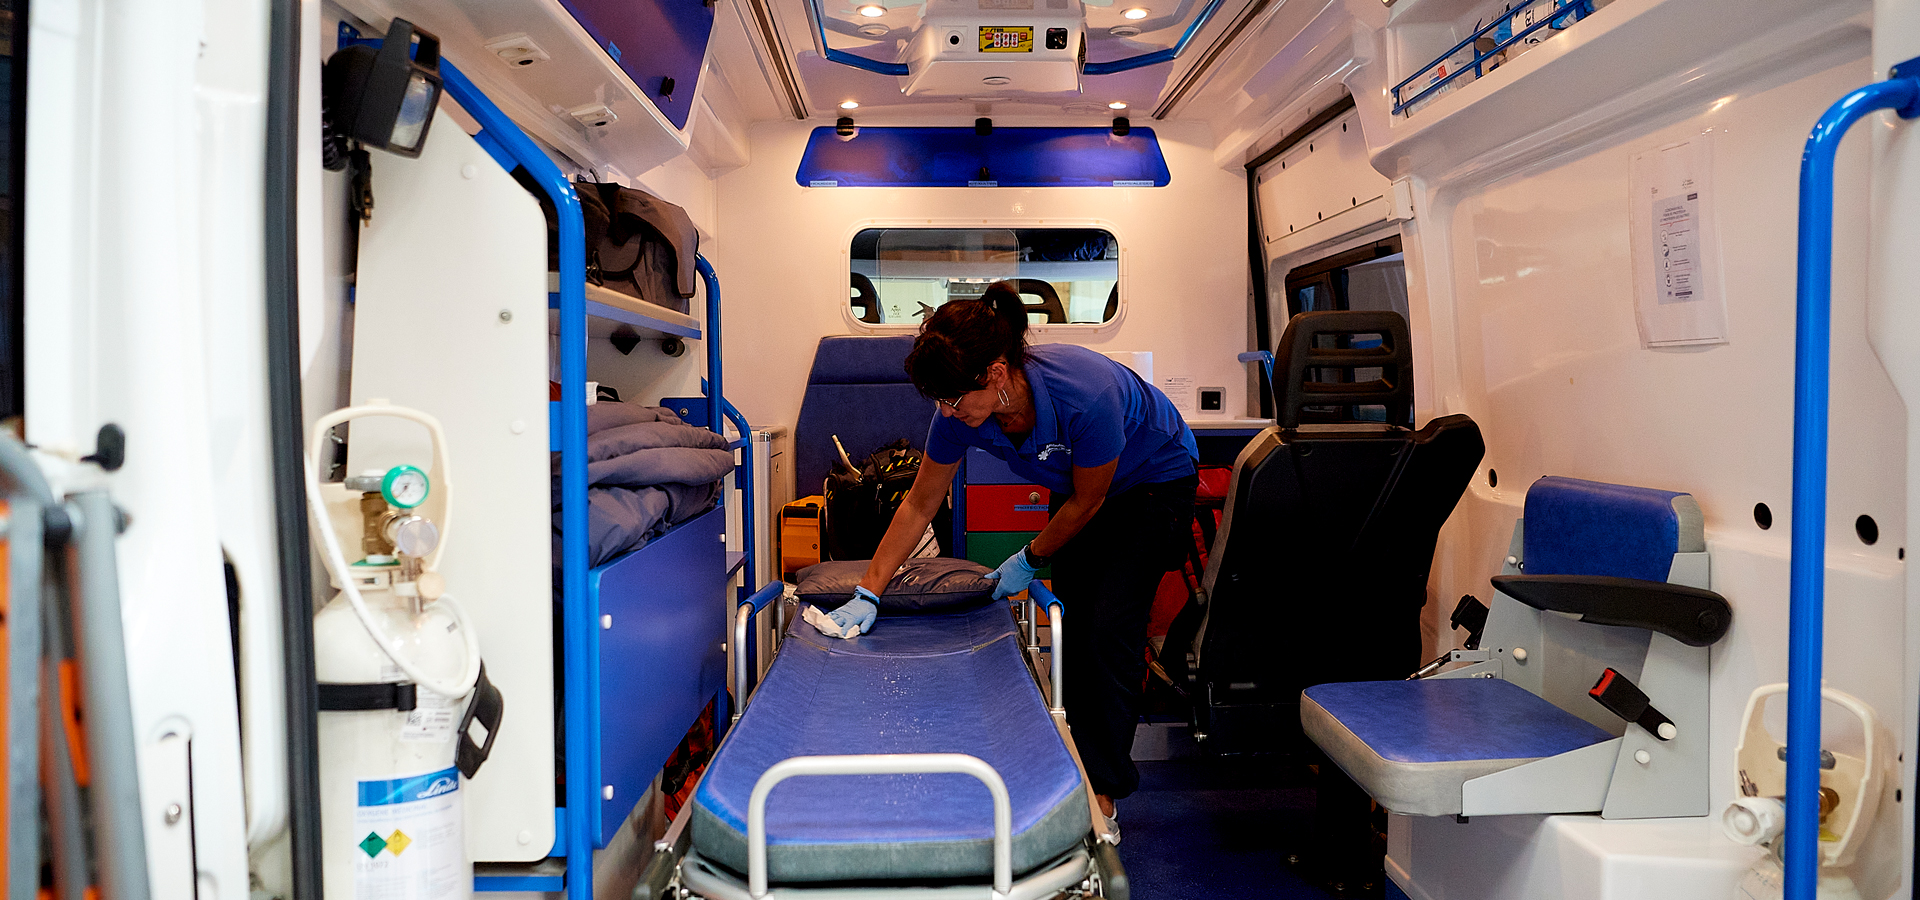 Ambulances Morin-Wagner - 2